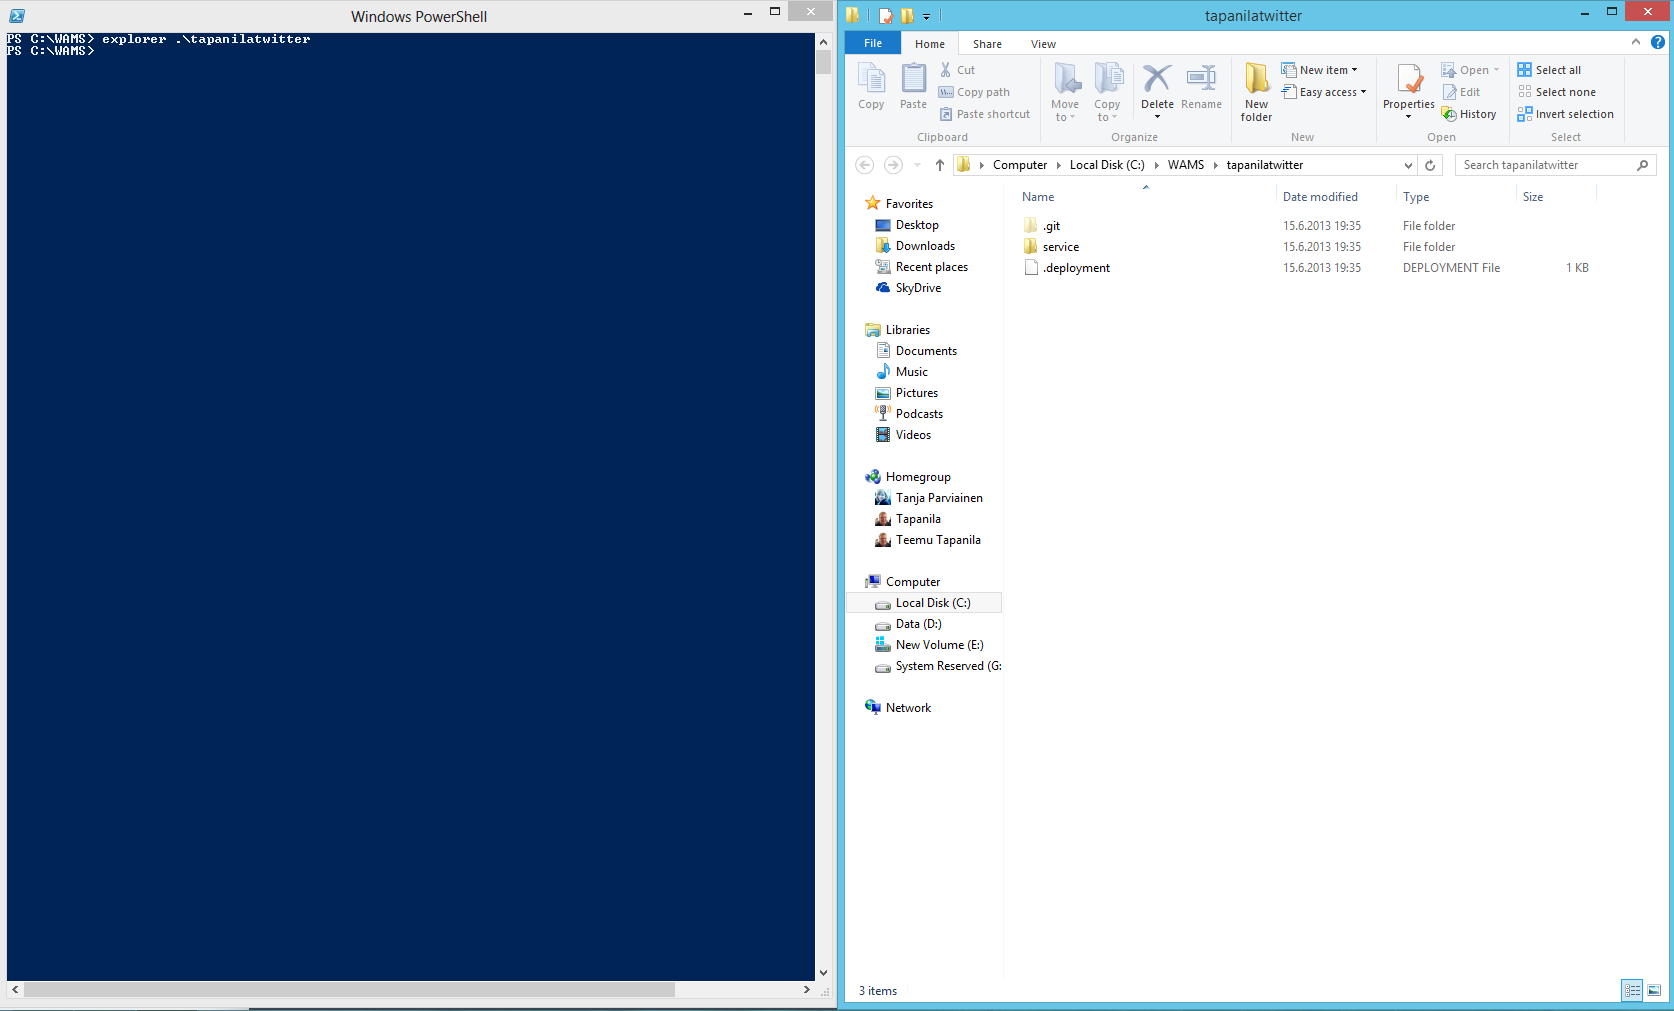 Windows Explorer view